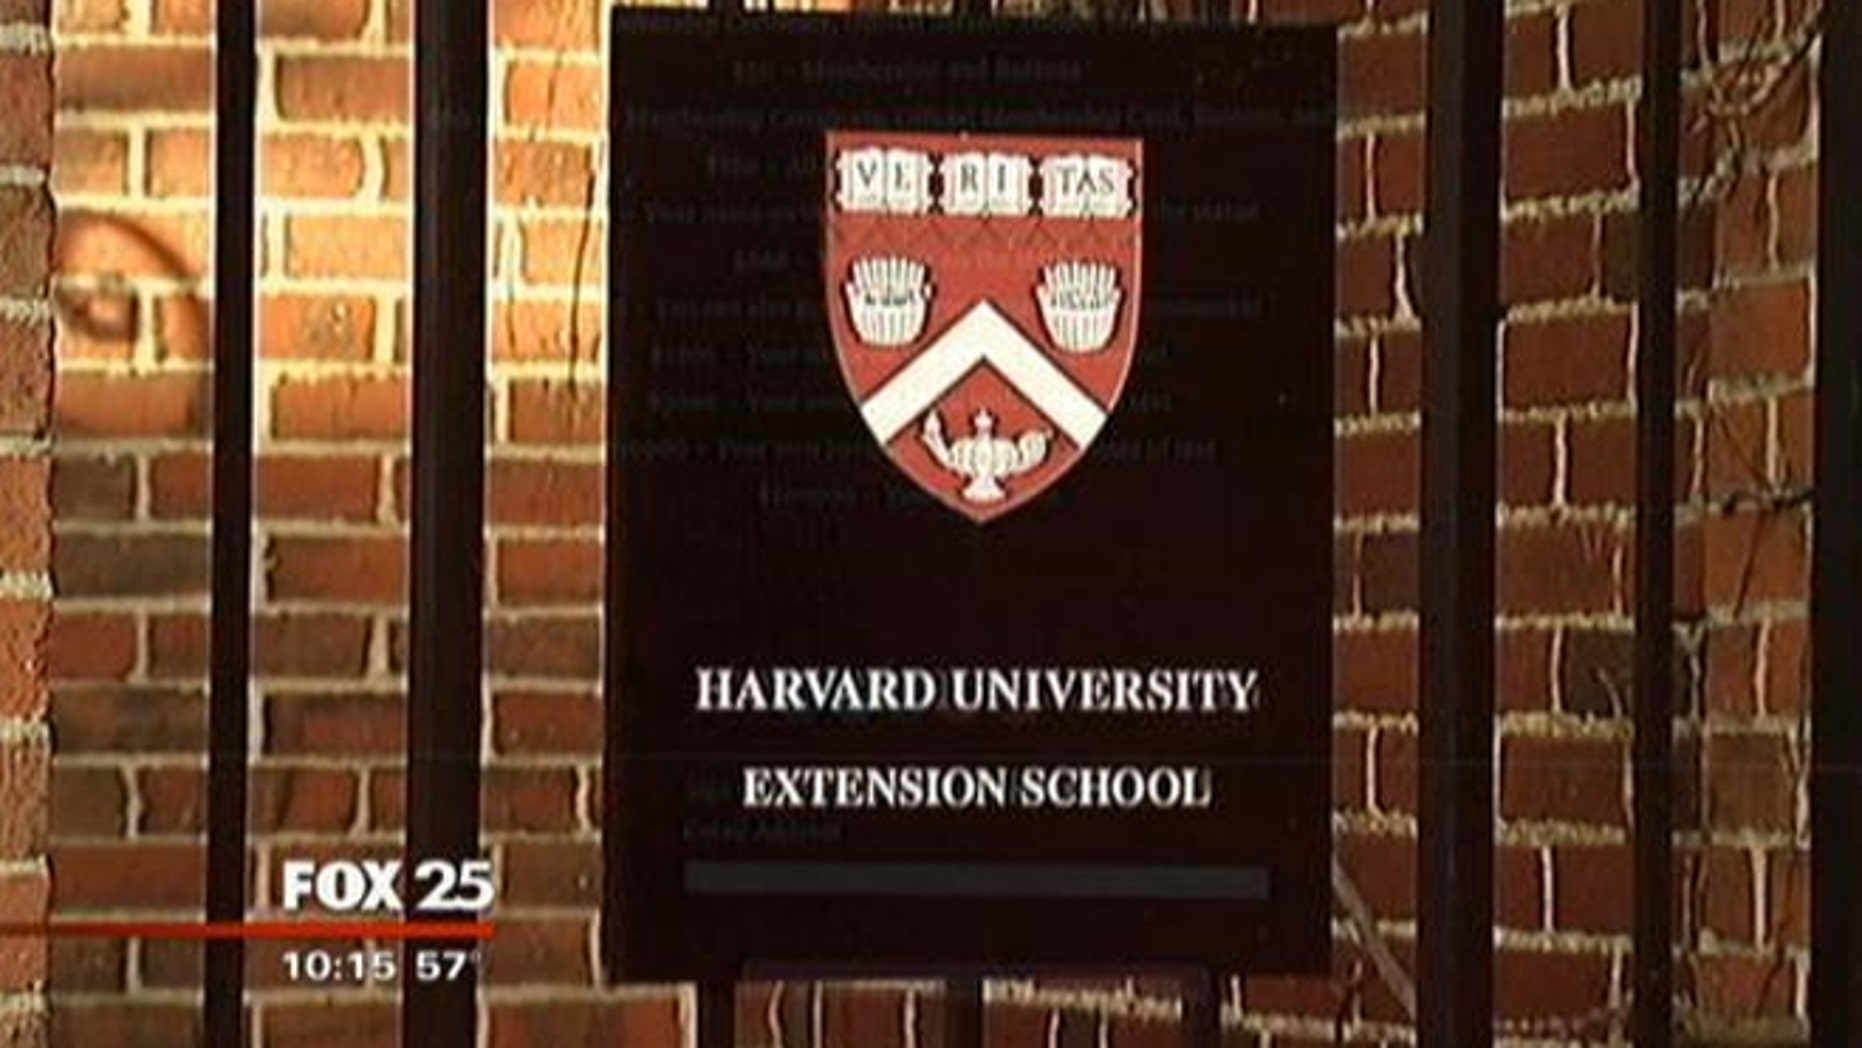 Harvard University student club is set to host a satanic black mass reenactment to celebrate witchcraft and satanic worship, which is drawing ire from the Archdiocese of Boston. (MyFoxBoston.com)